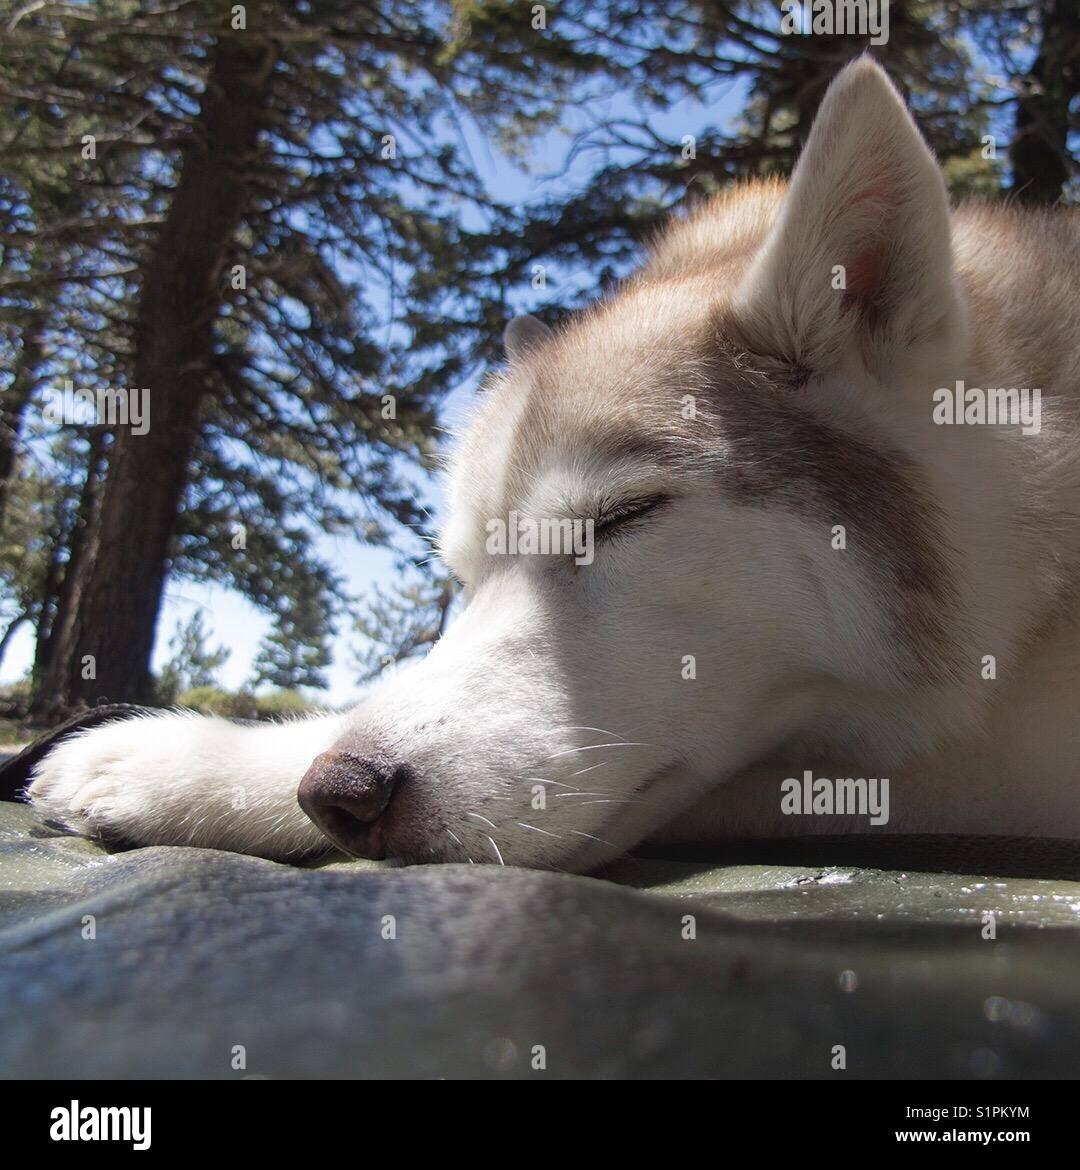 Siberian husky sleeping in the forest - Stock Image